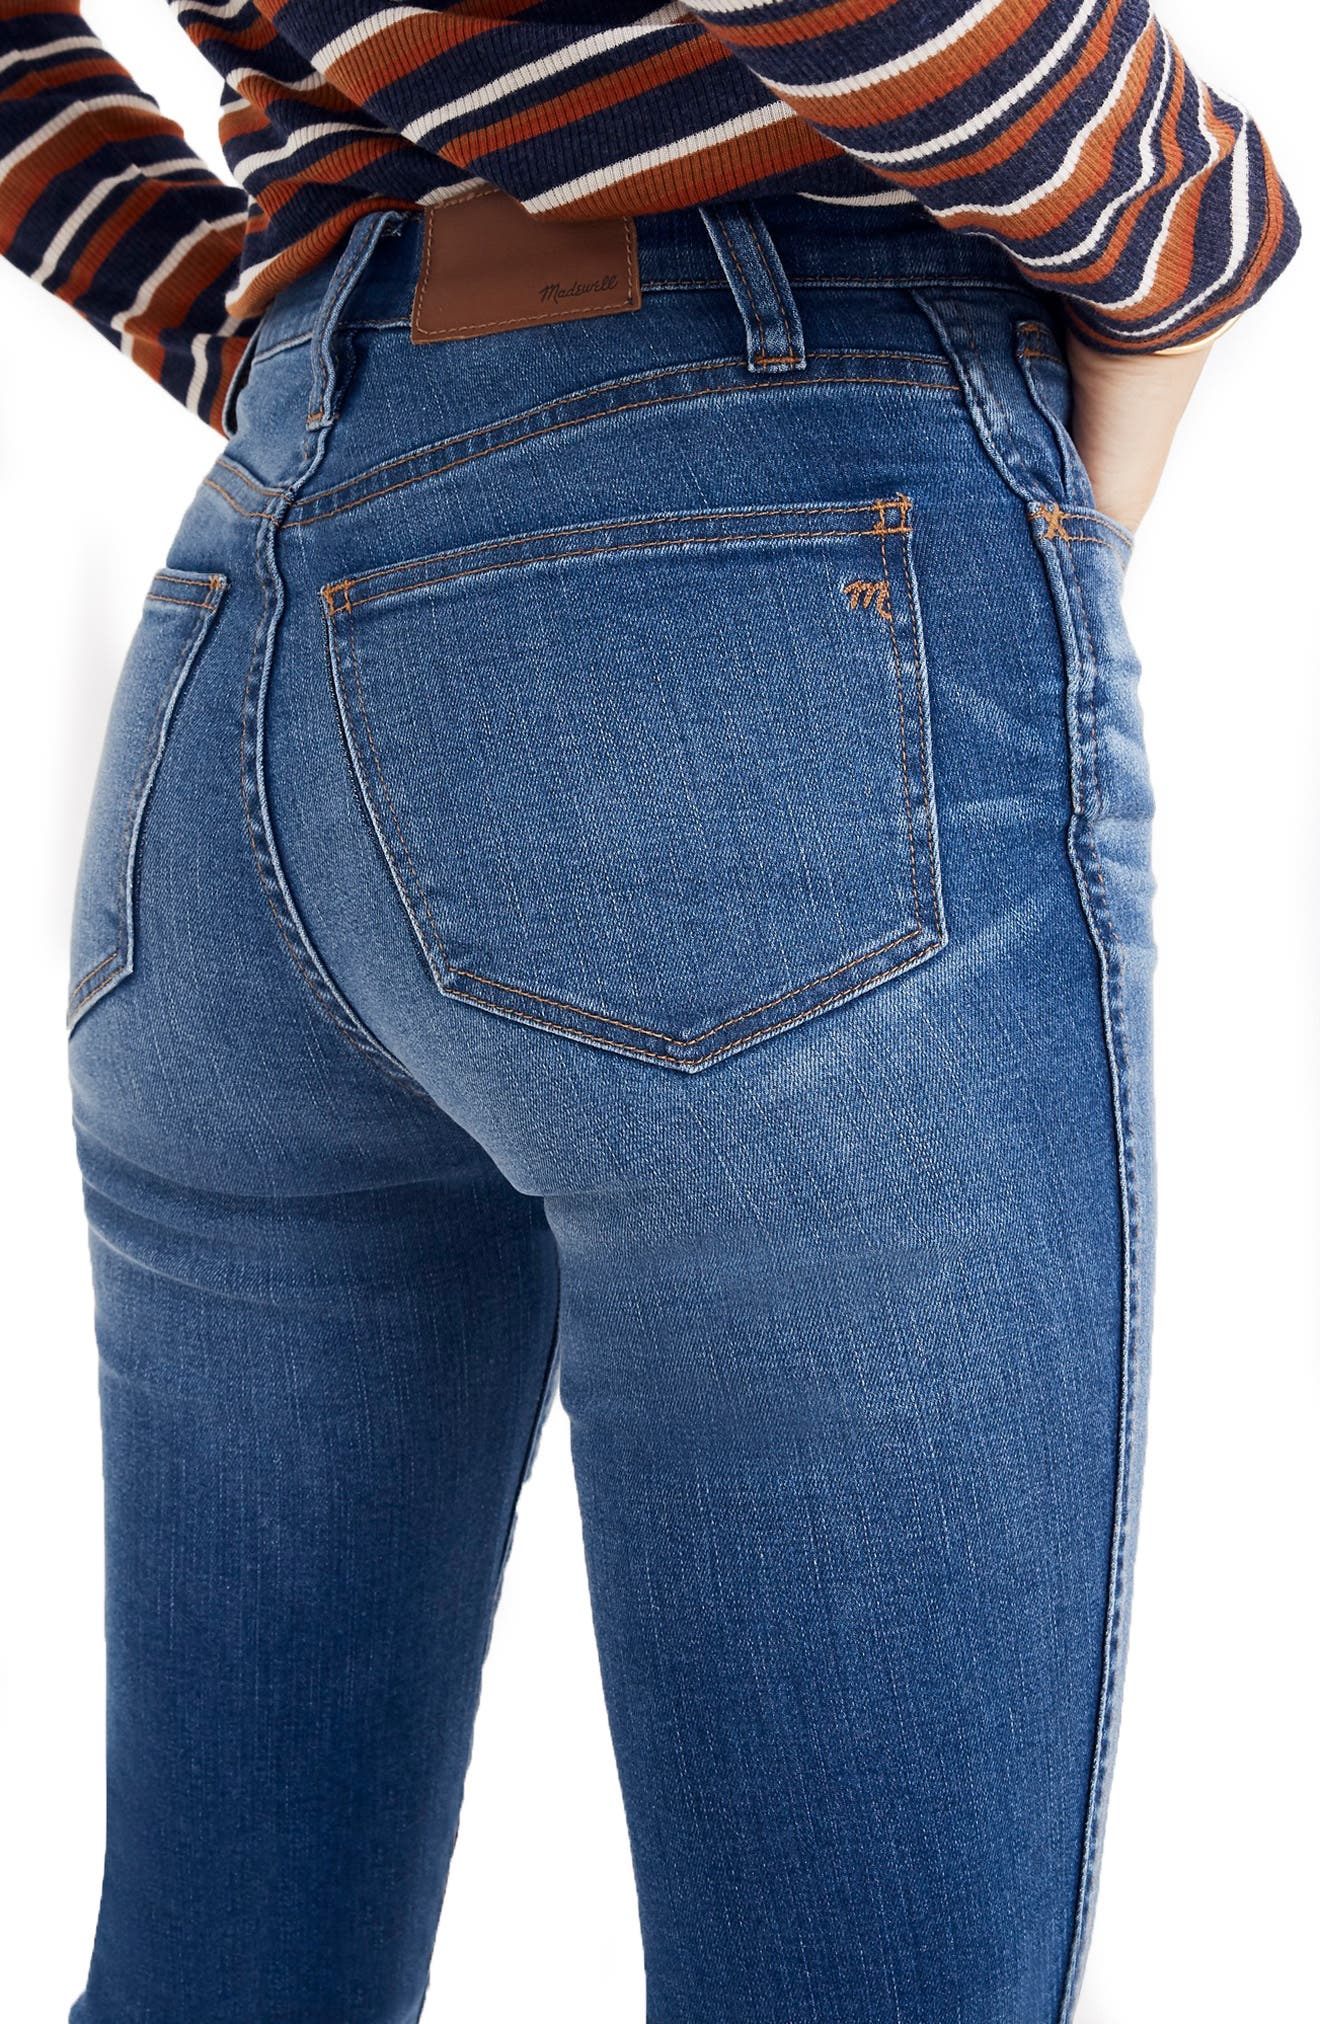 MADEWELL, Roadtripper Ripped High Waist Ankle Skinny Jeans, Alternate thumbnail 3, color, THE ROAD TRIPPER W/ SLIT KNEES